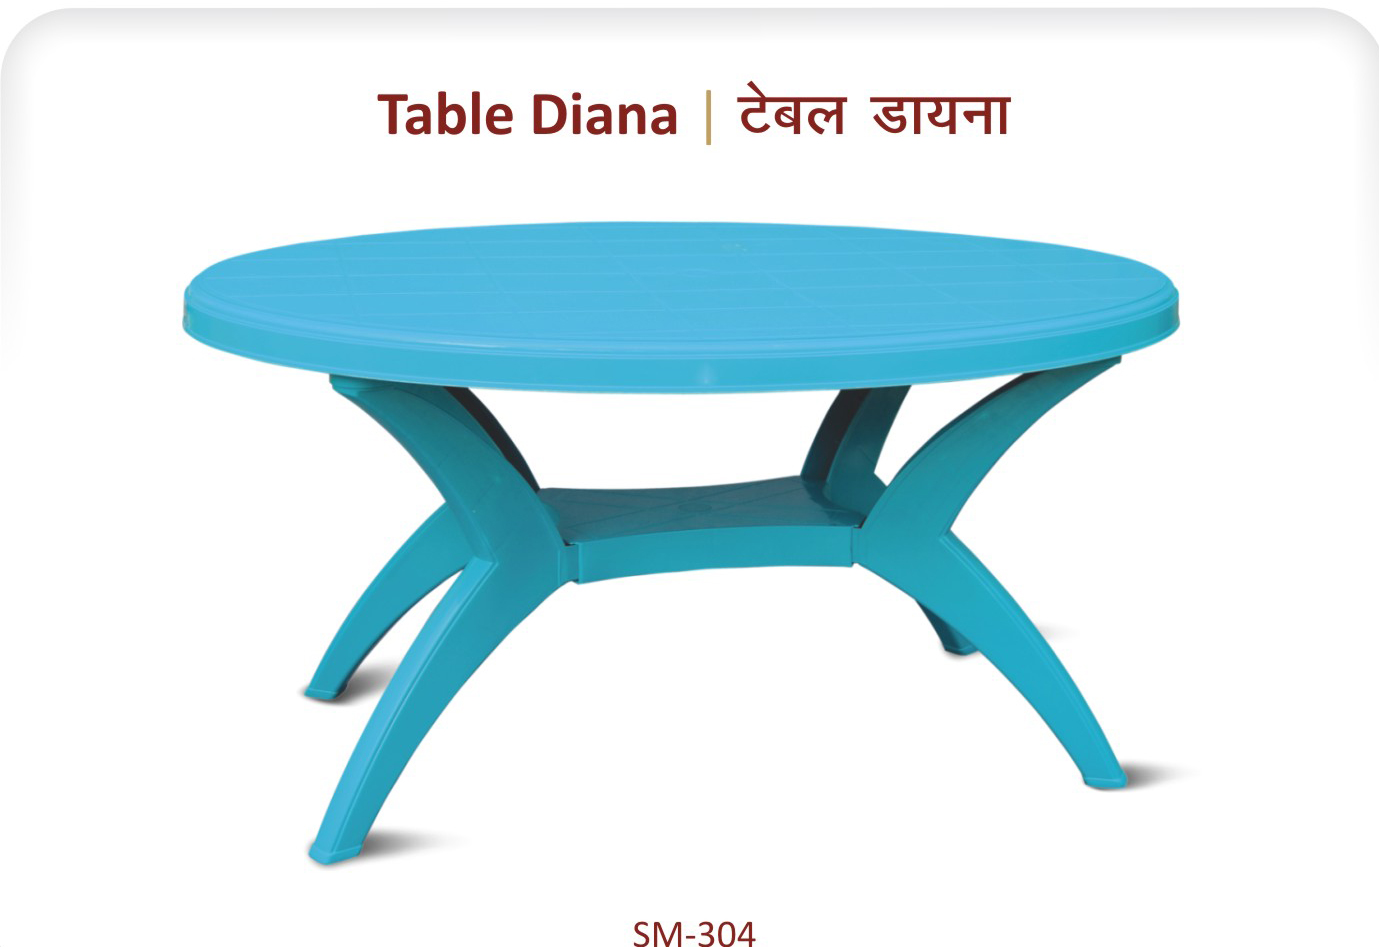 Table Diana